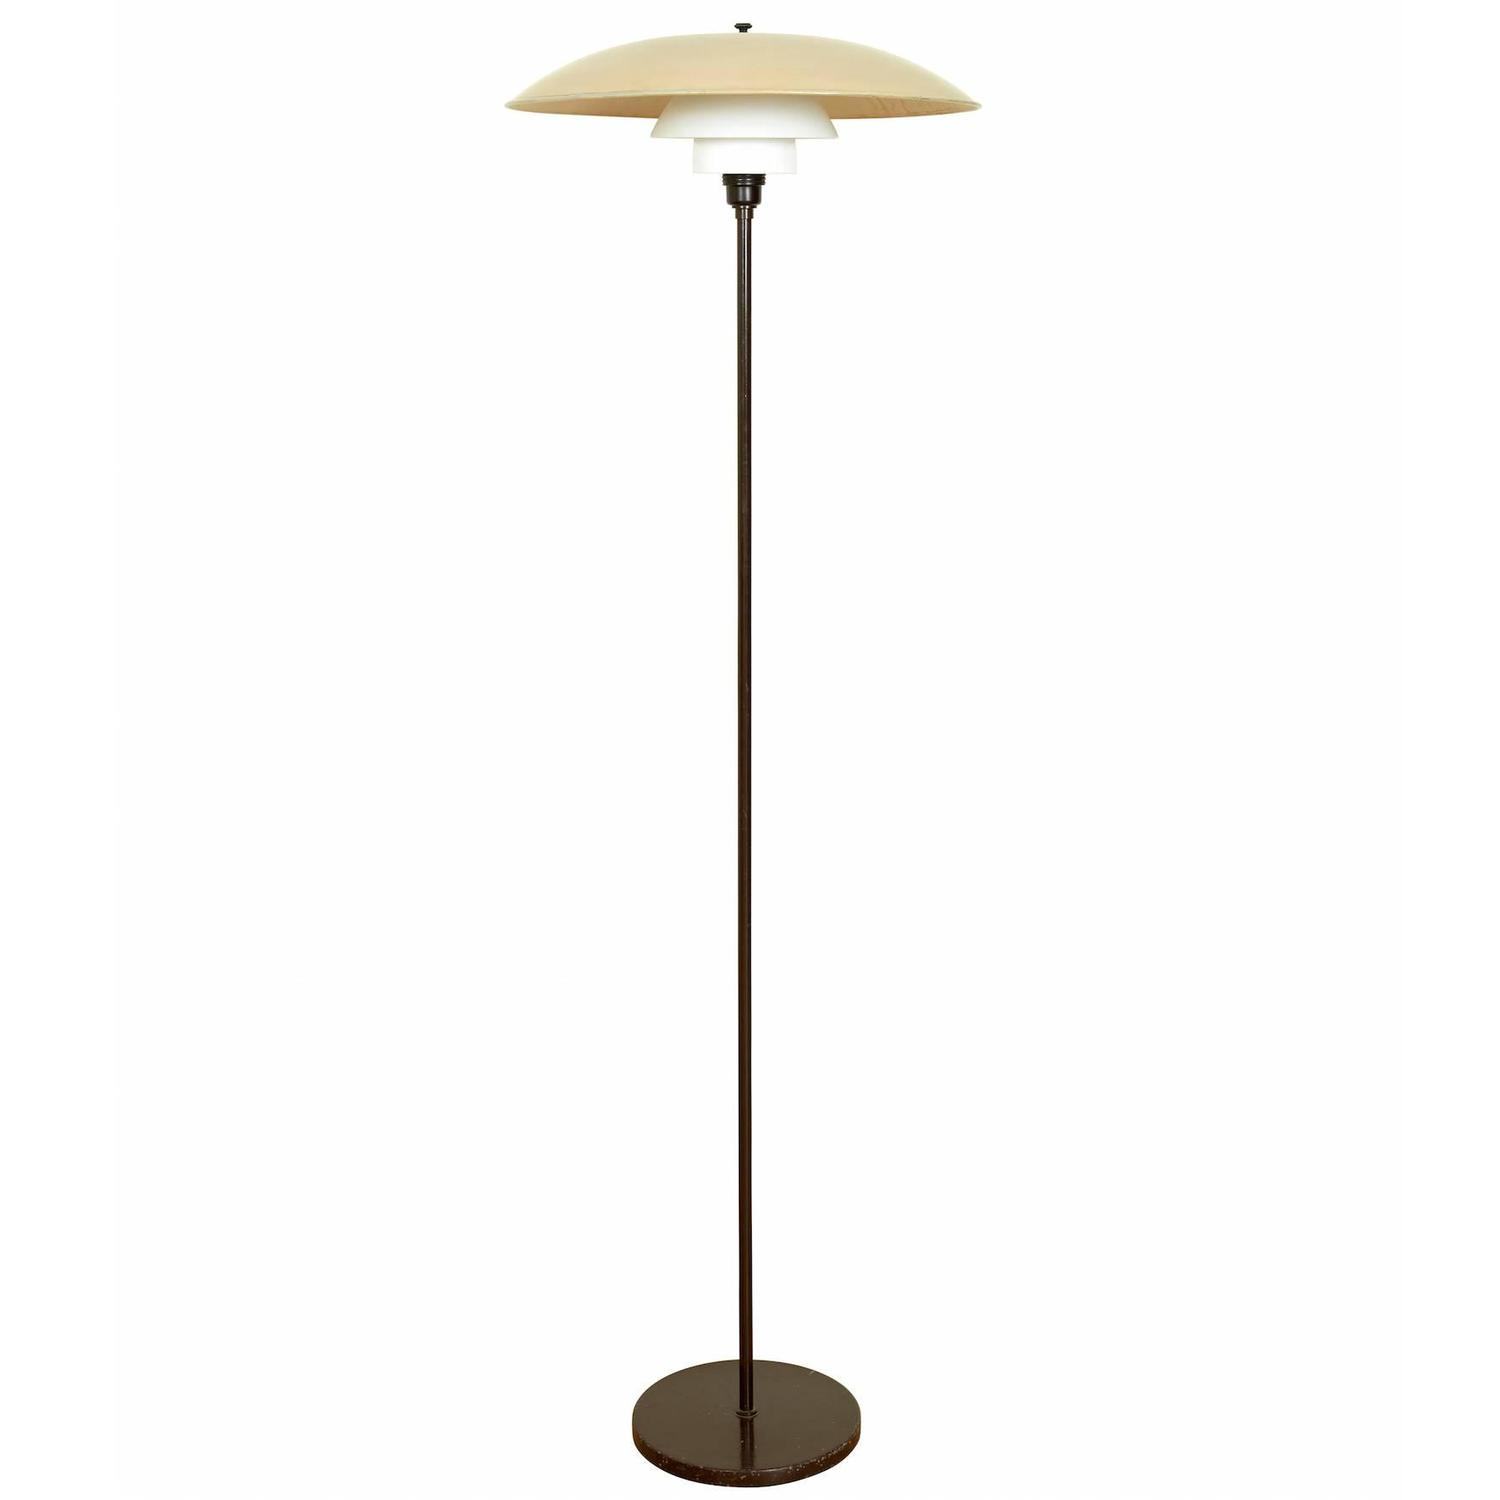 ph 5 3 floor lamp by poul henningsen for sale at 1stdibs With floor lamp for sale philippines